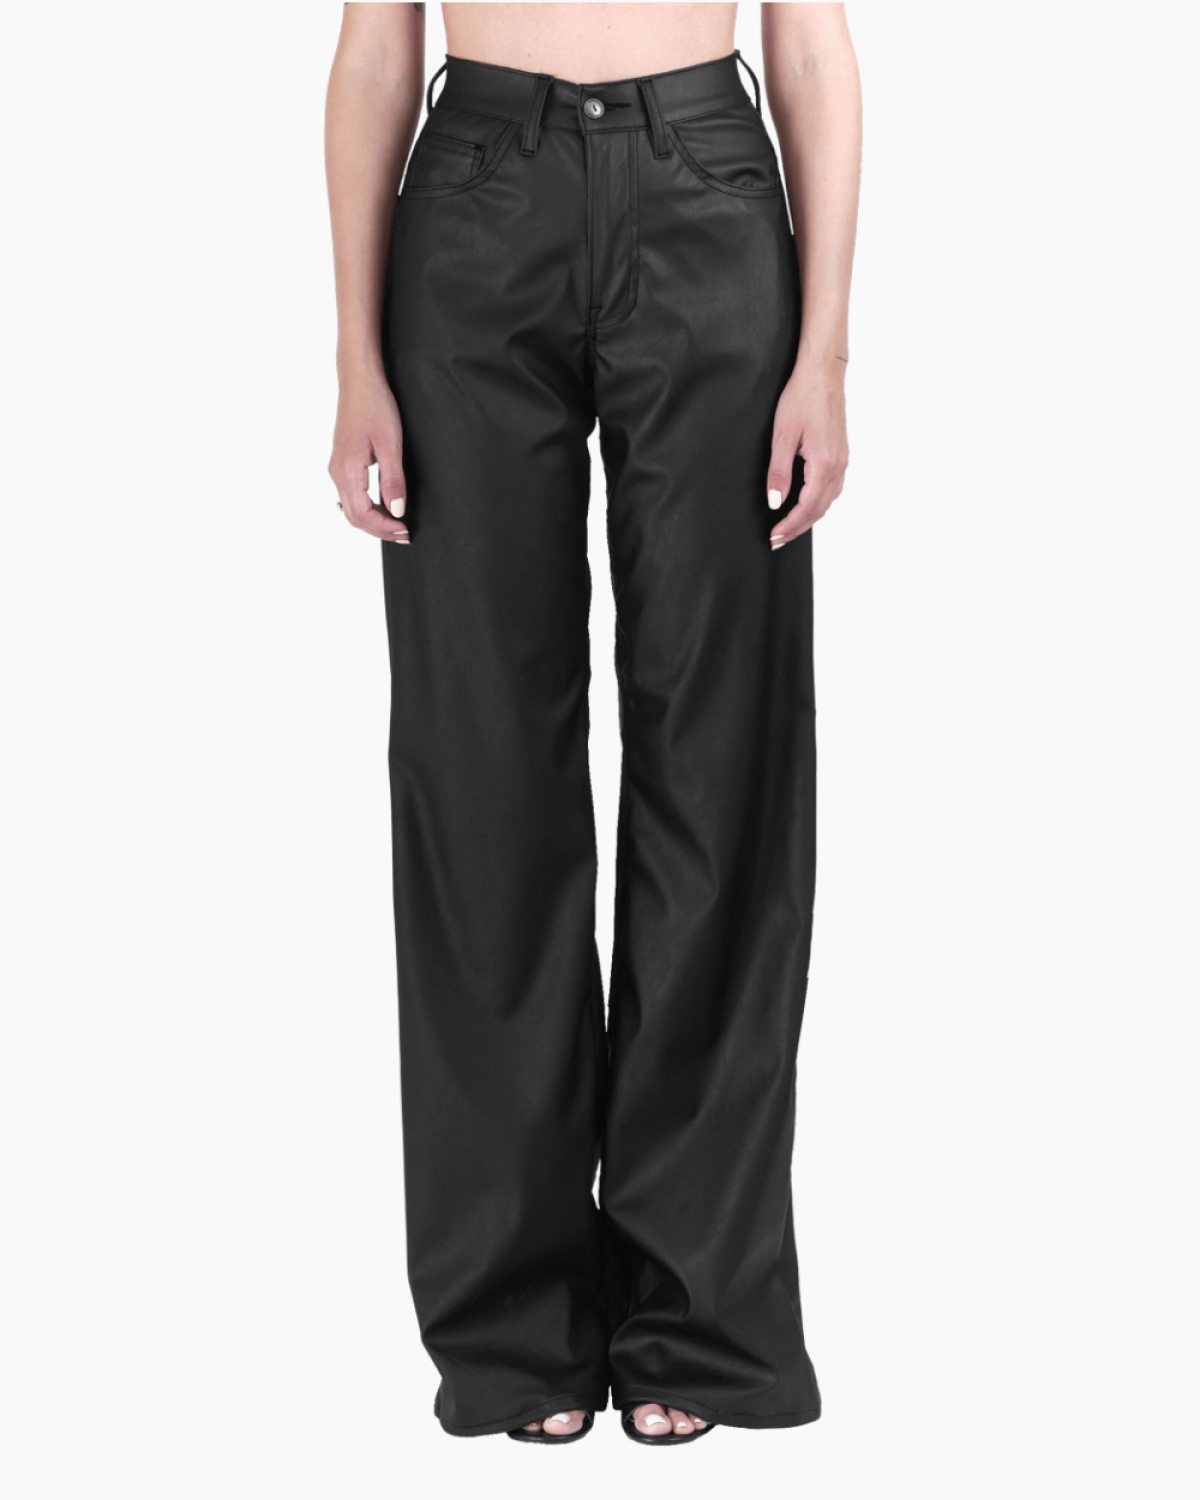 Marissa Black Faux-Leather Trouser